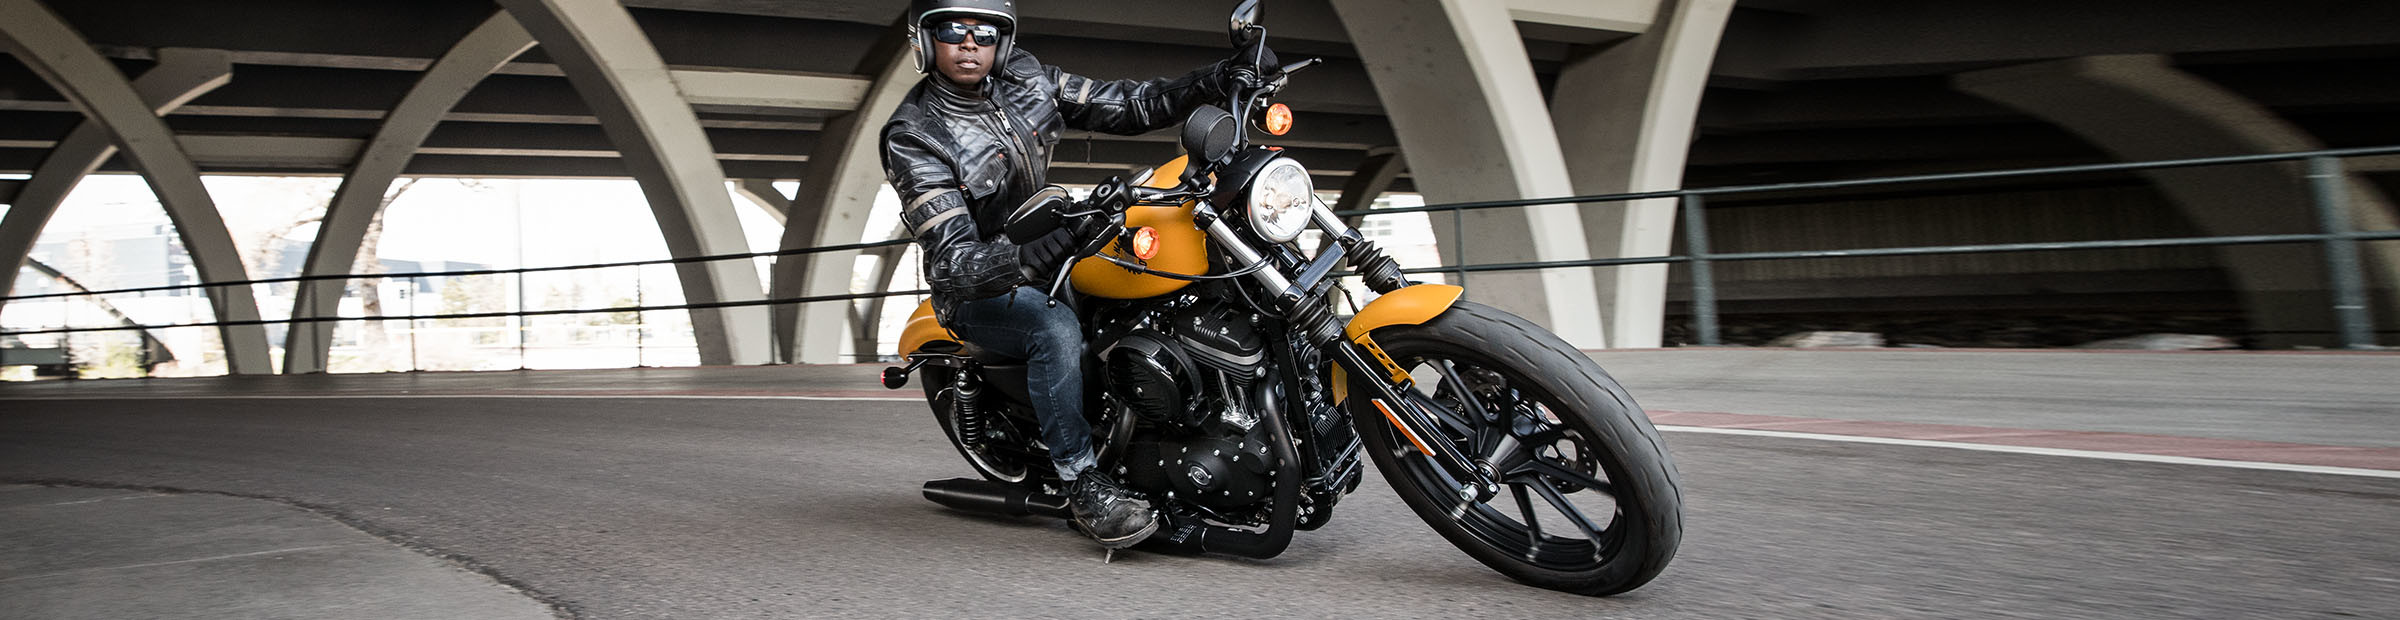 Riding Academy at Harley-Davidson® of Tampa